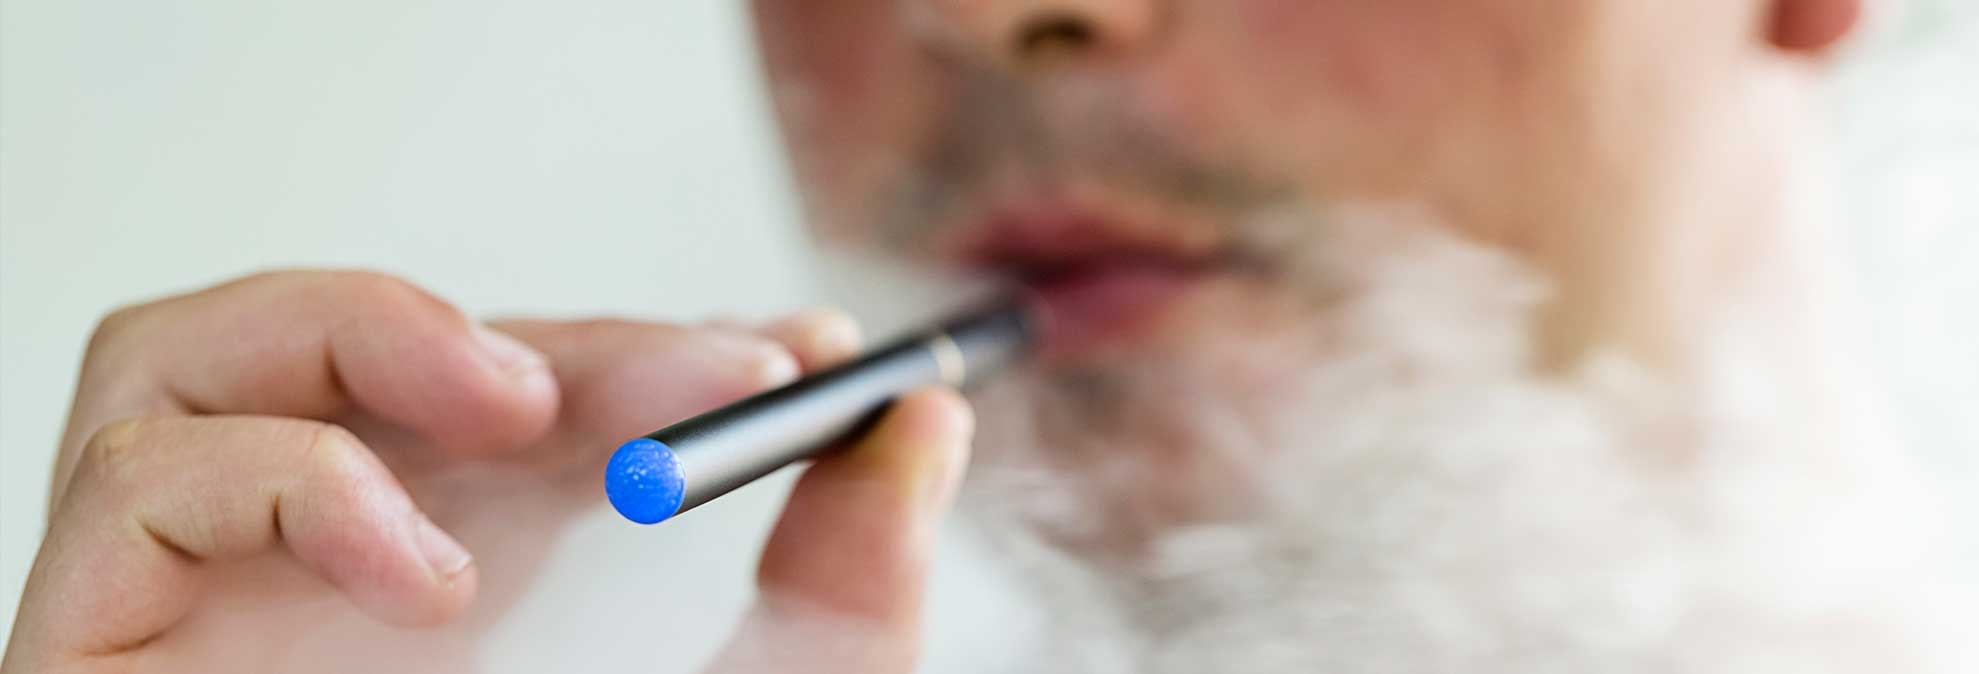 More Evidence That E-Cigarettes Might Be Harmful to Teens